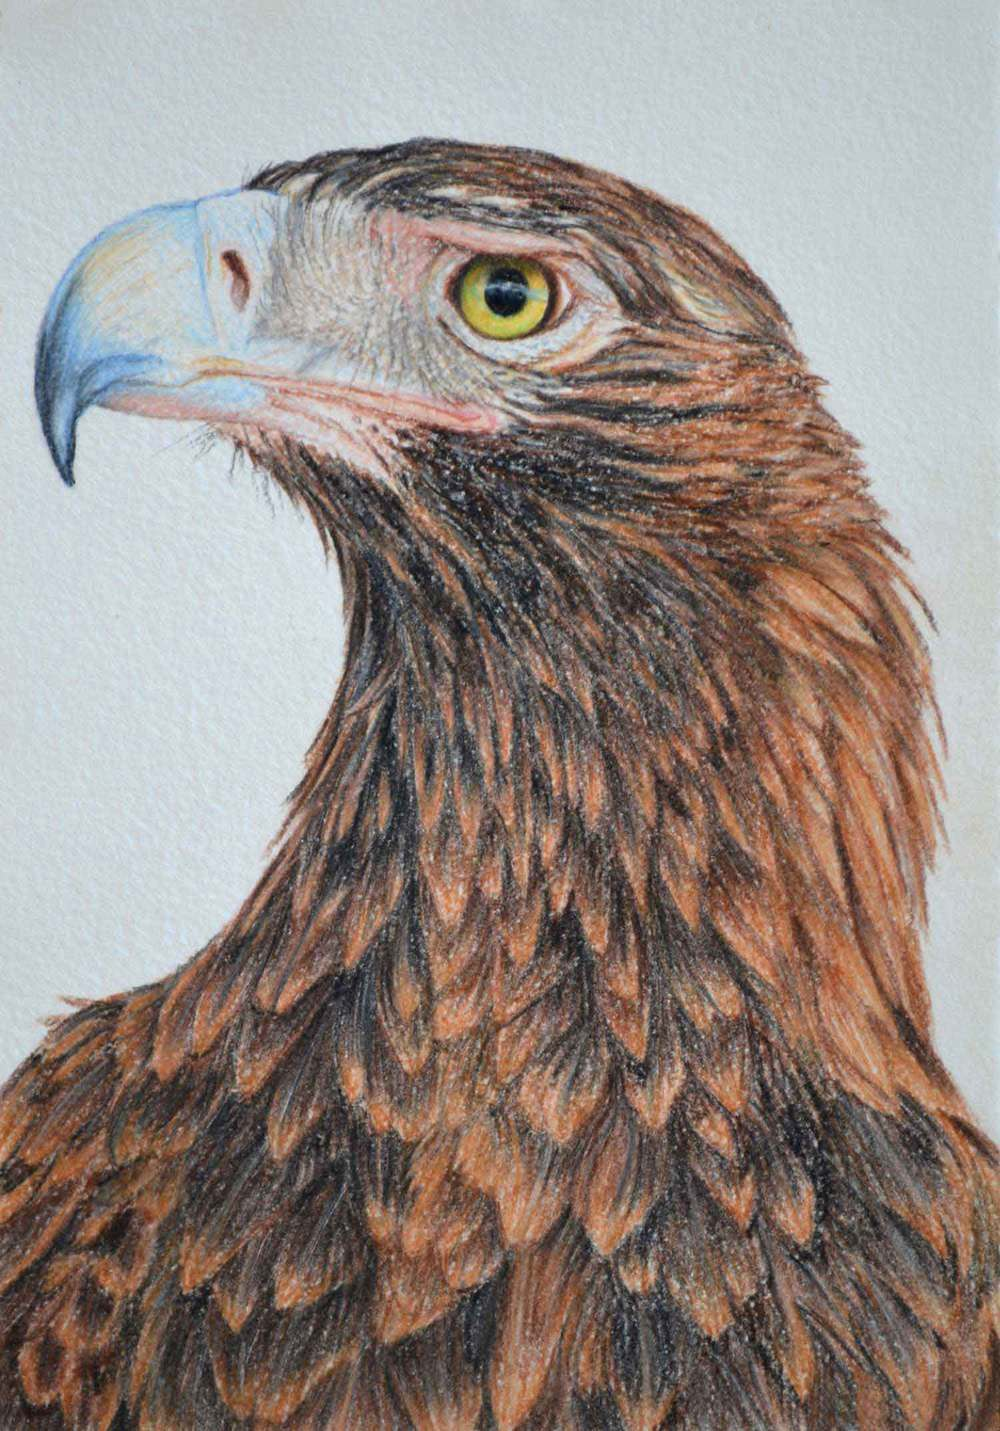 Wedge Tailed Eagle II    30 x 21 cm                           Pastel on handmade paper                                   $800